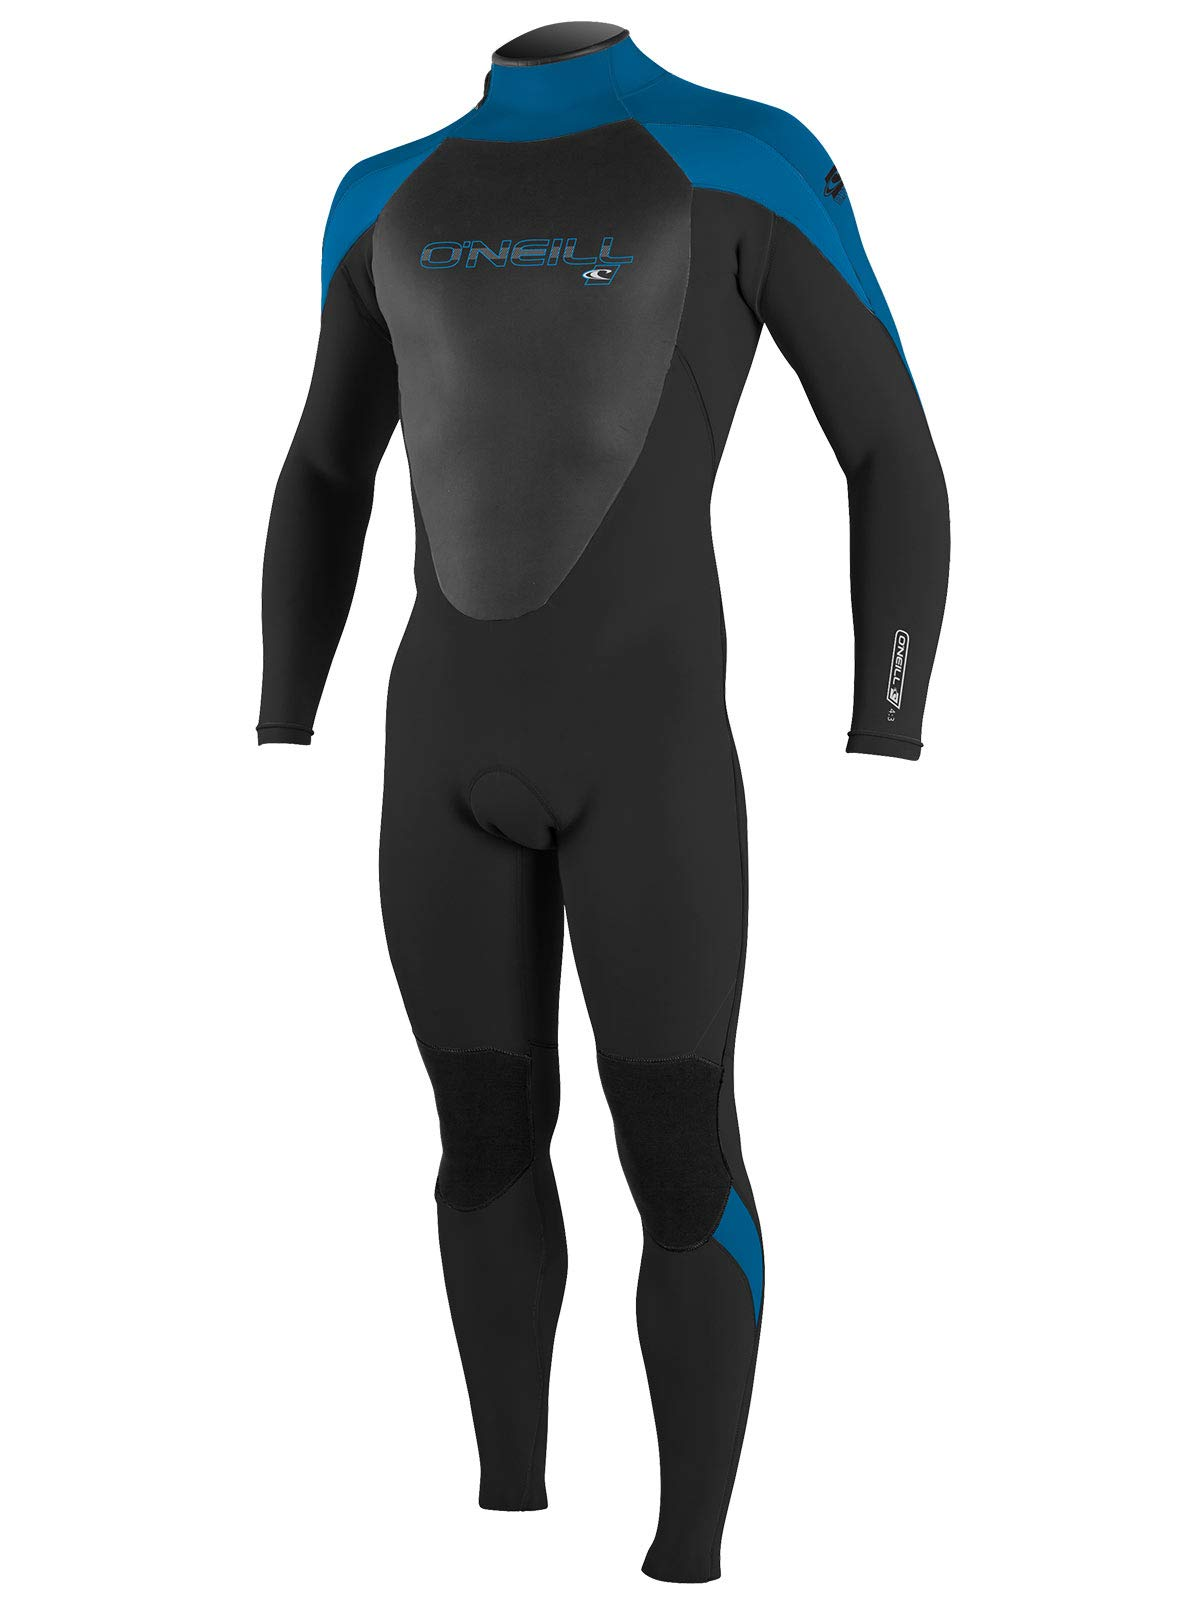 O'Neill Men's Epic 4/3mm Full Wetsuit LS Black/Ocean/Brite Blue (4212) by O'Neill Wetsuits